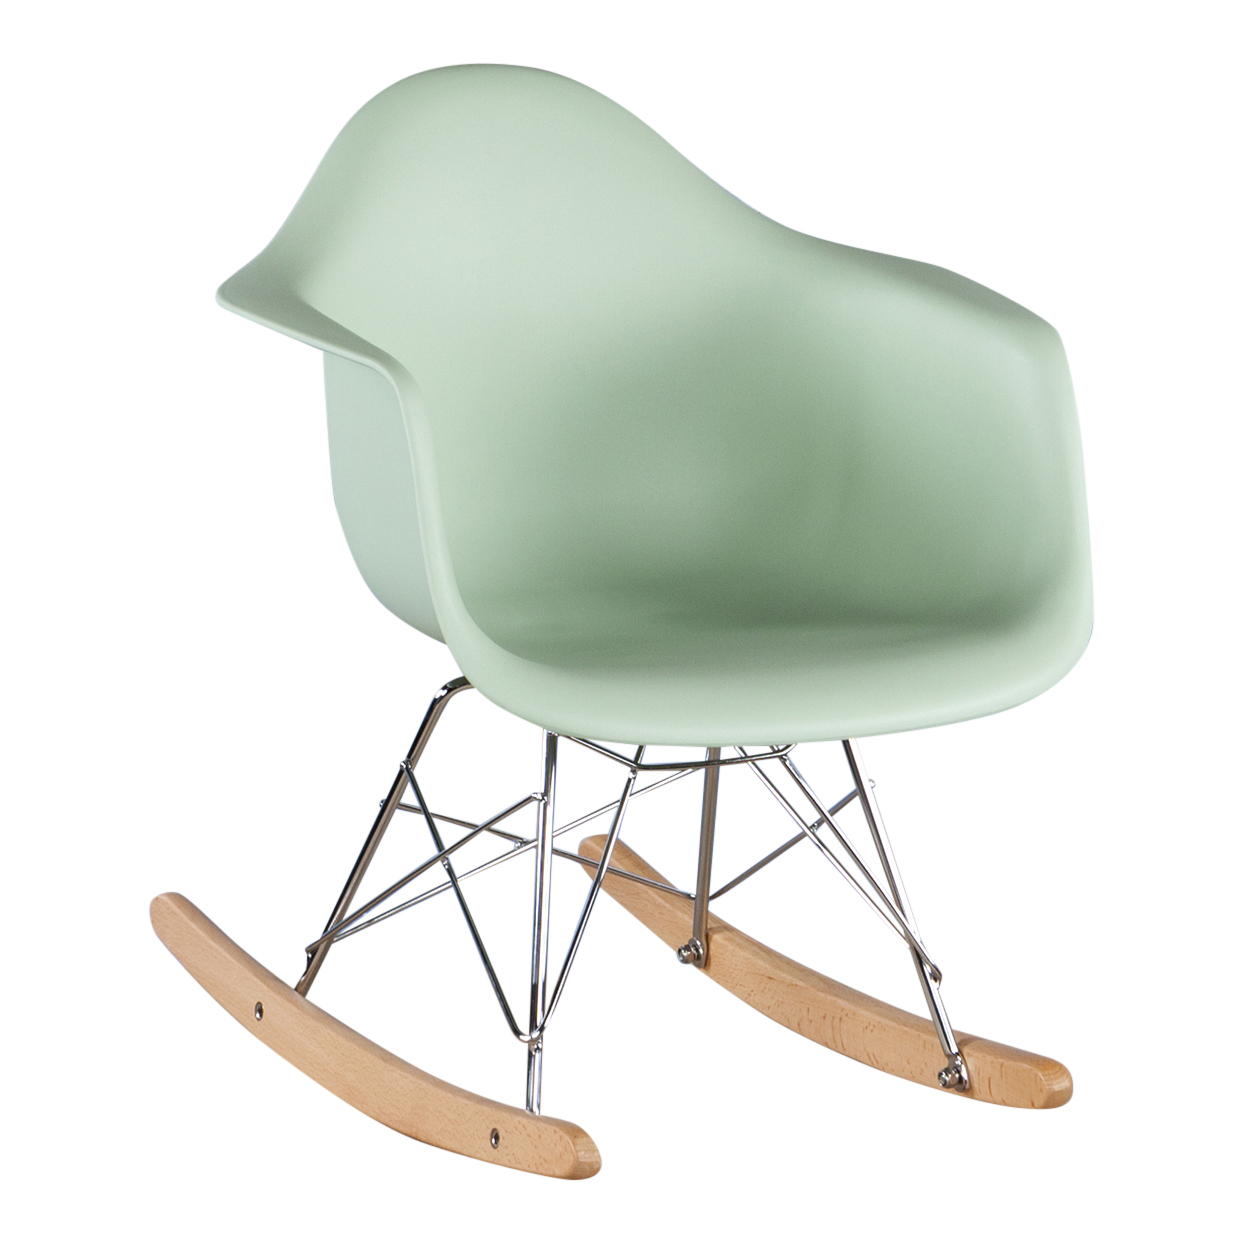 Eames Rar Kinder Eames Schommelstoel Rar Junior Minty